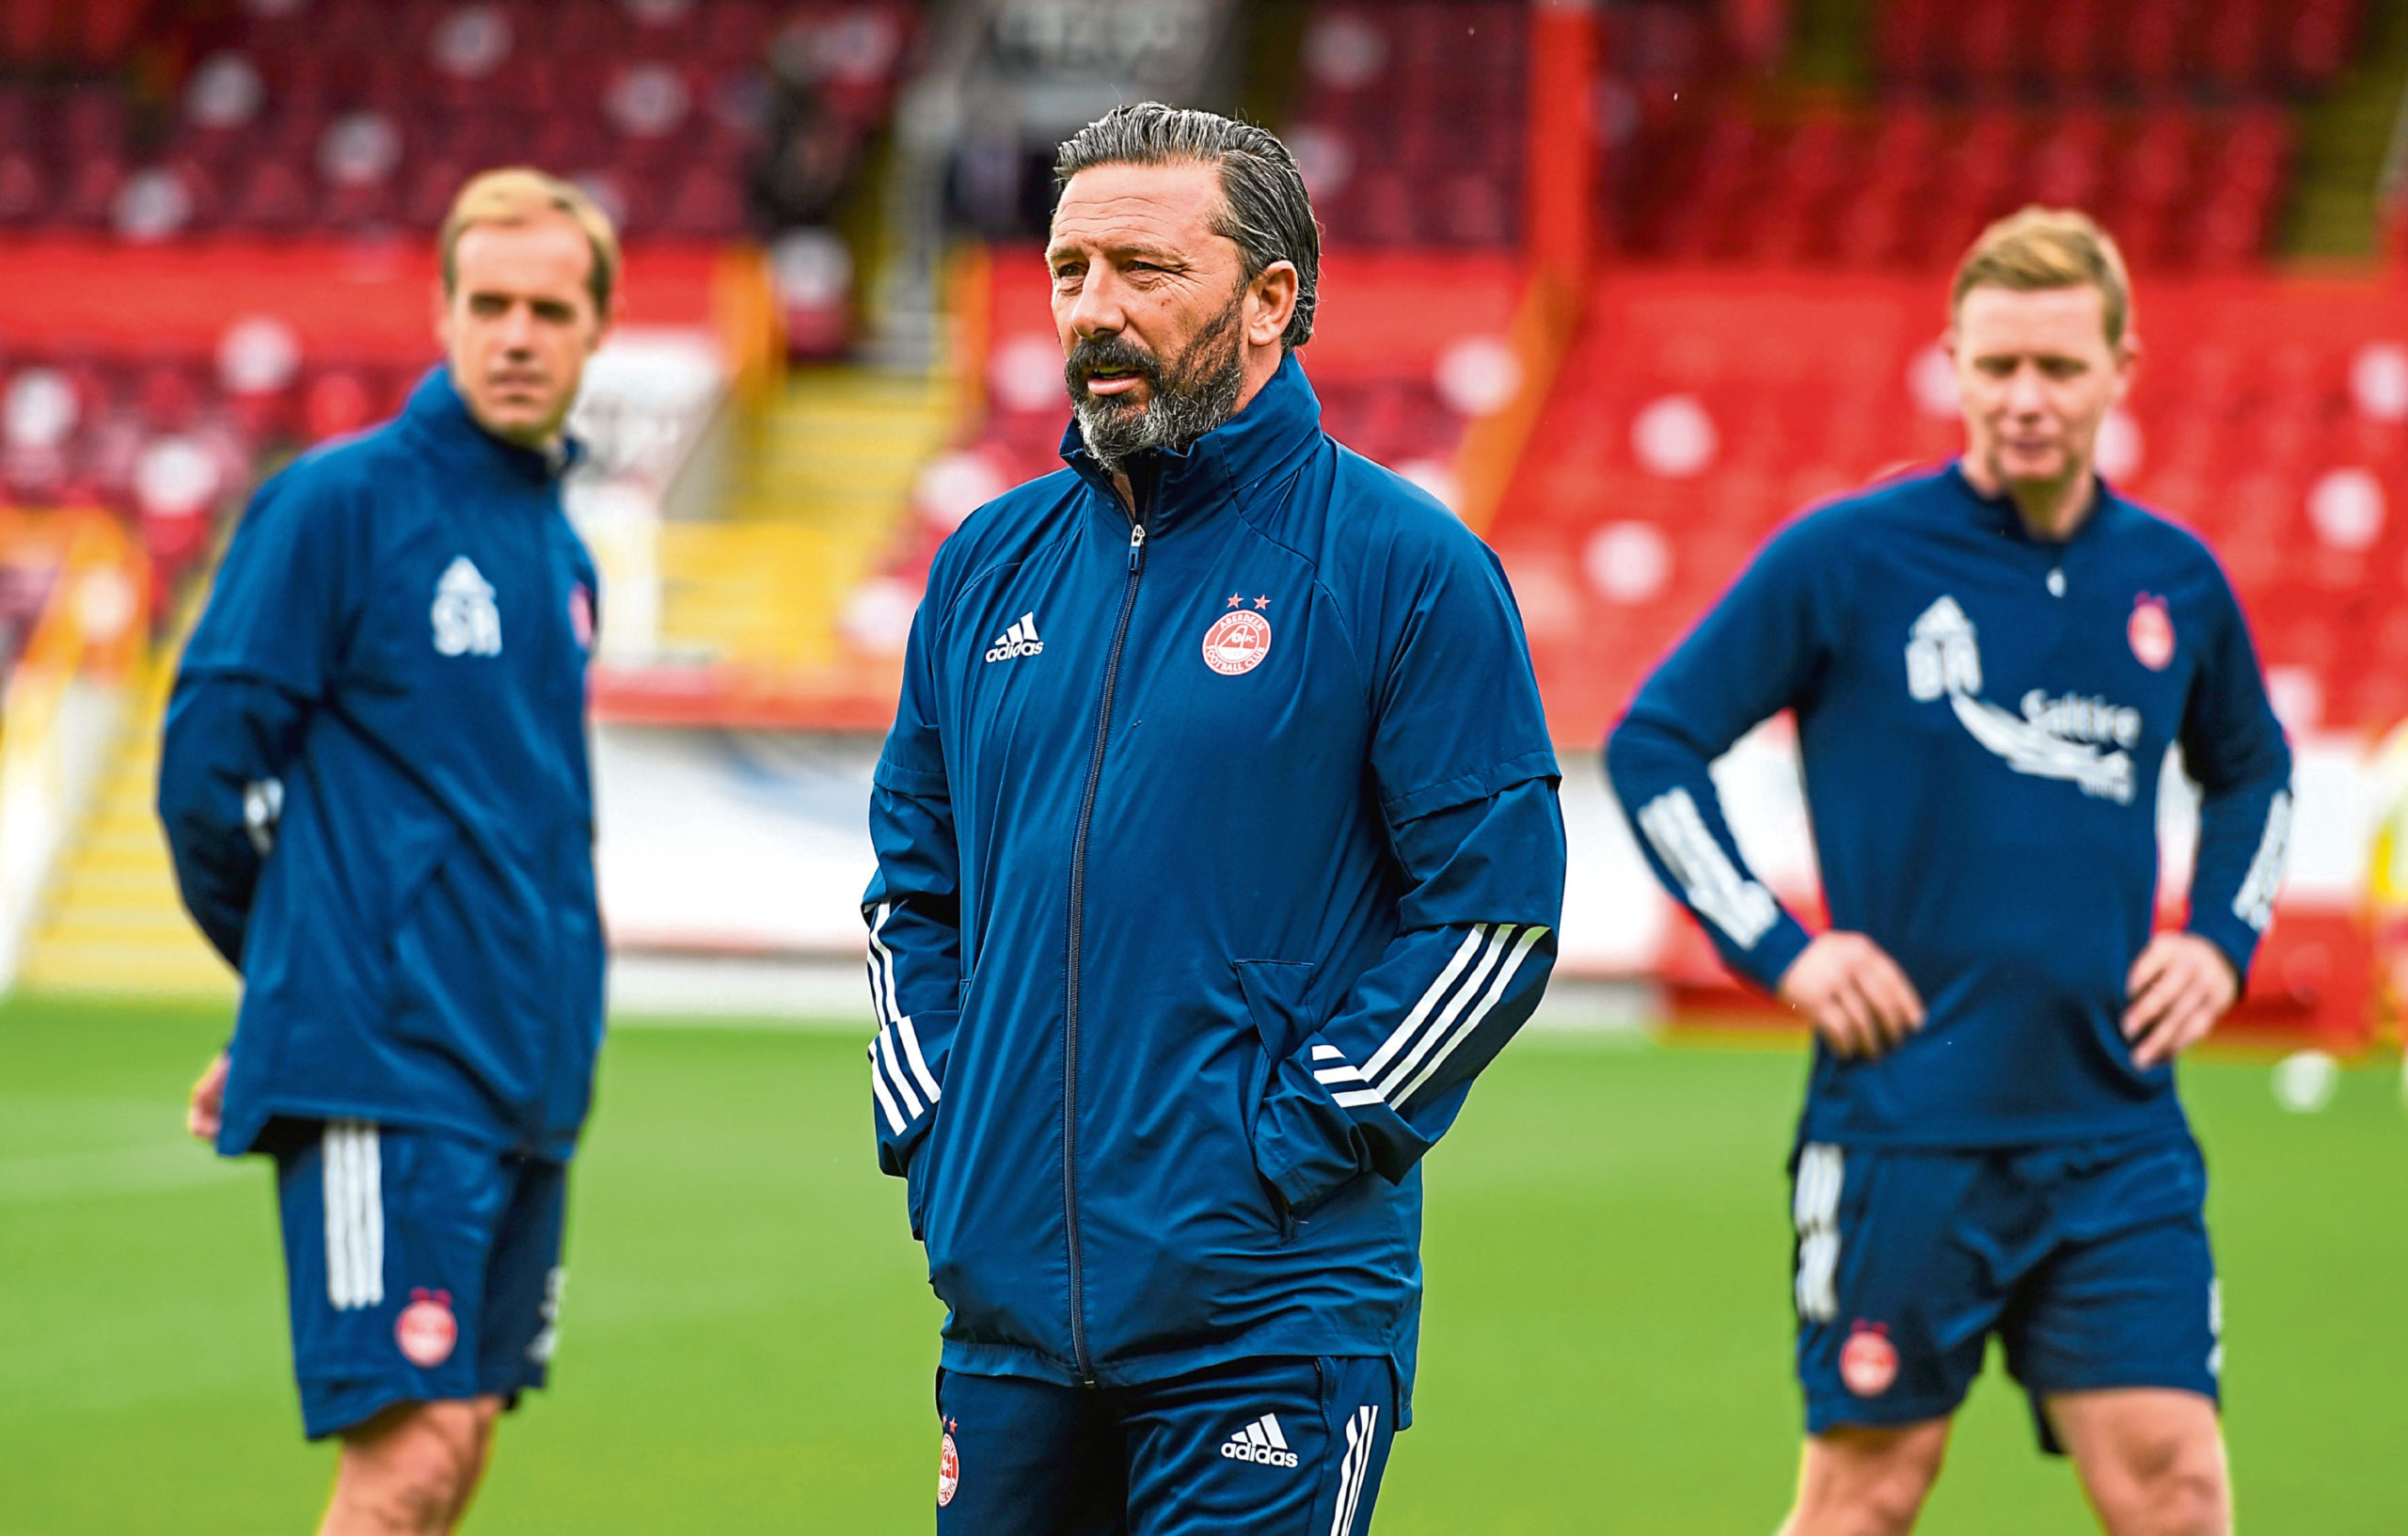 Derek McInnes and his coaching staff will have decisions to make ahead of the trip to St Johnstone.